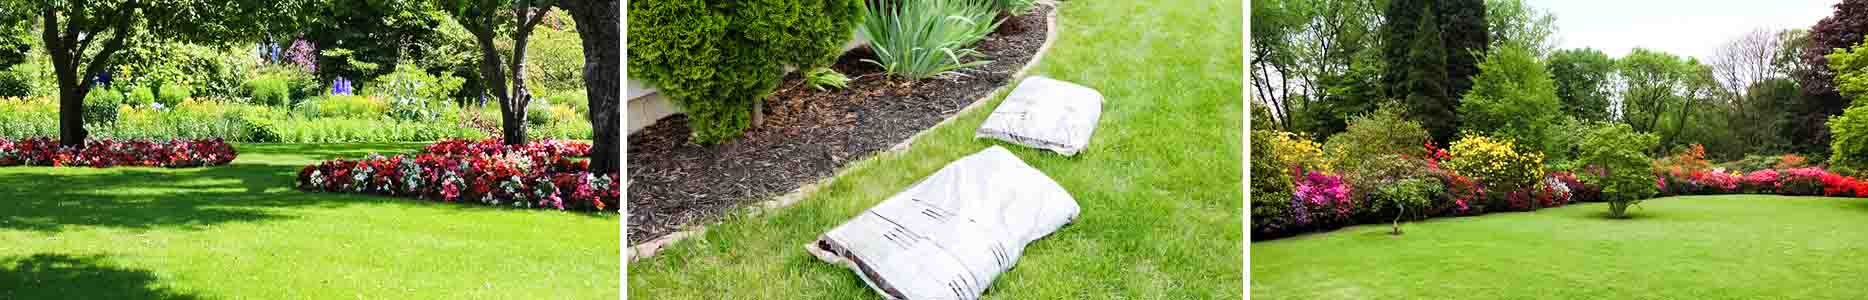 Lawn fertilization header